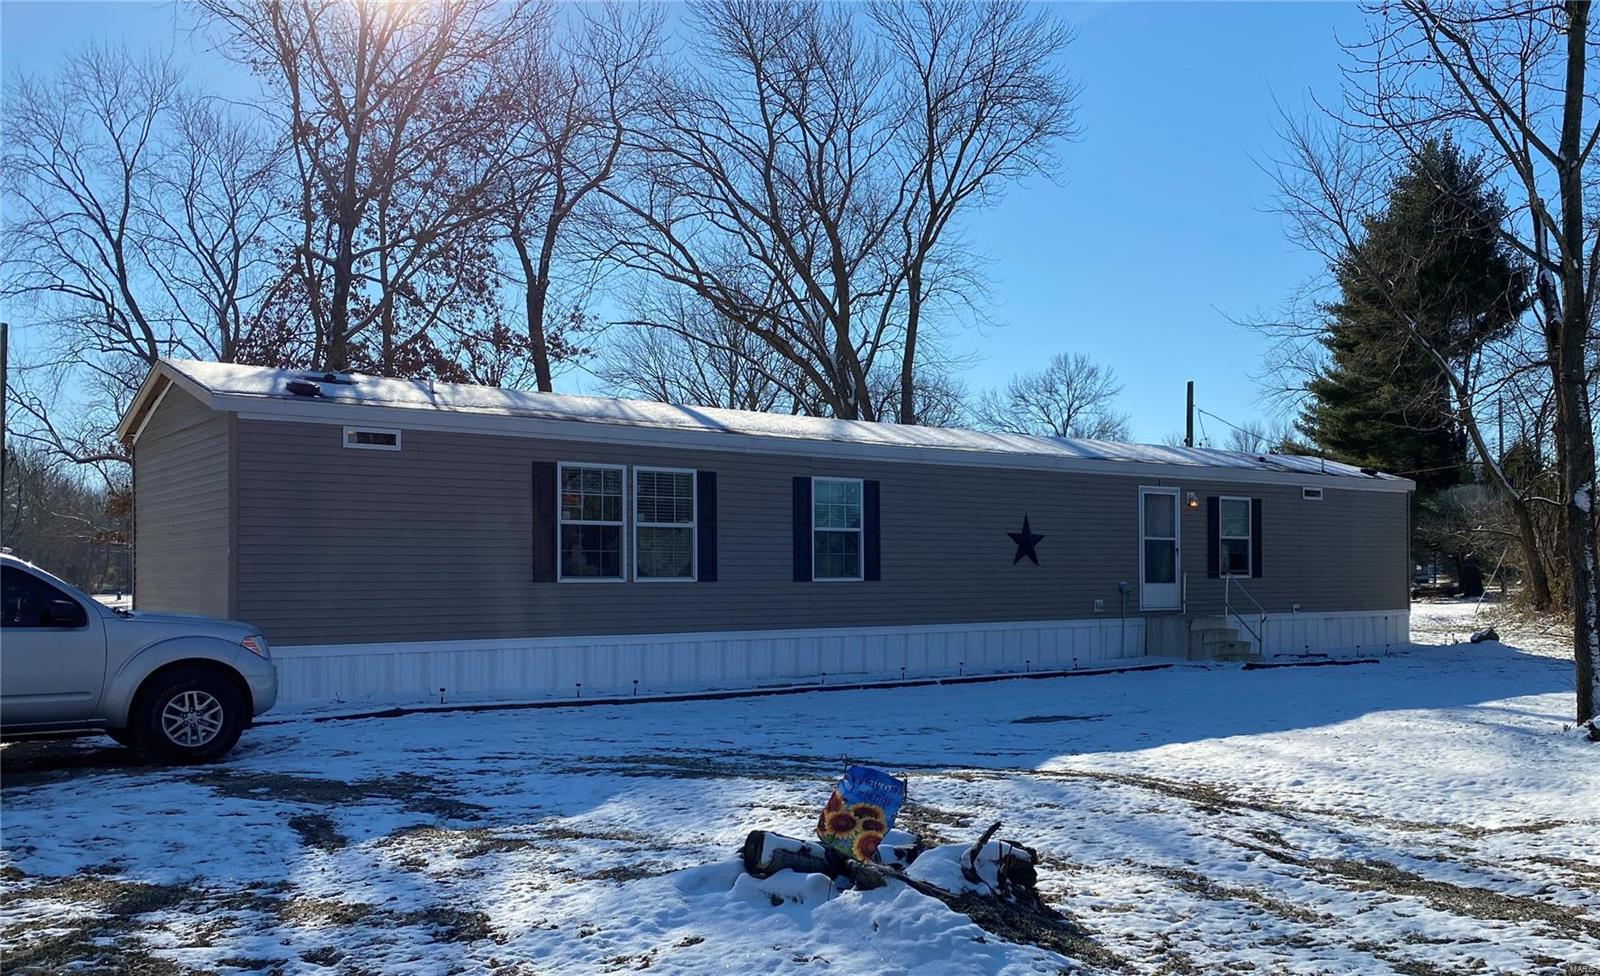 107 E Nettie Property Photo - Sesser, IL real estate listing